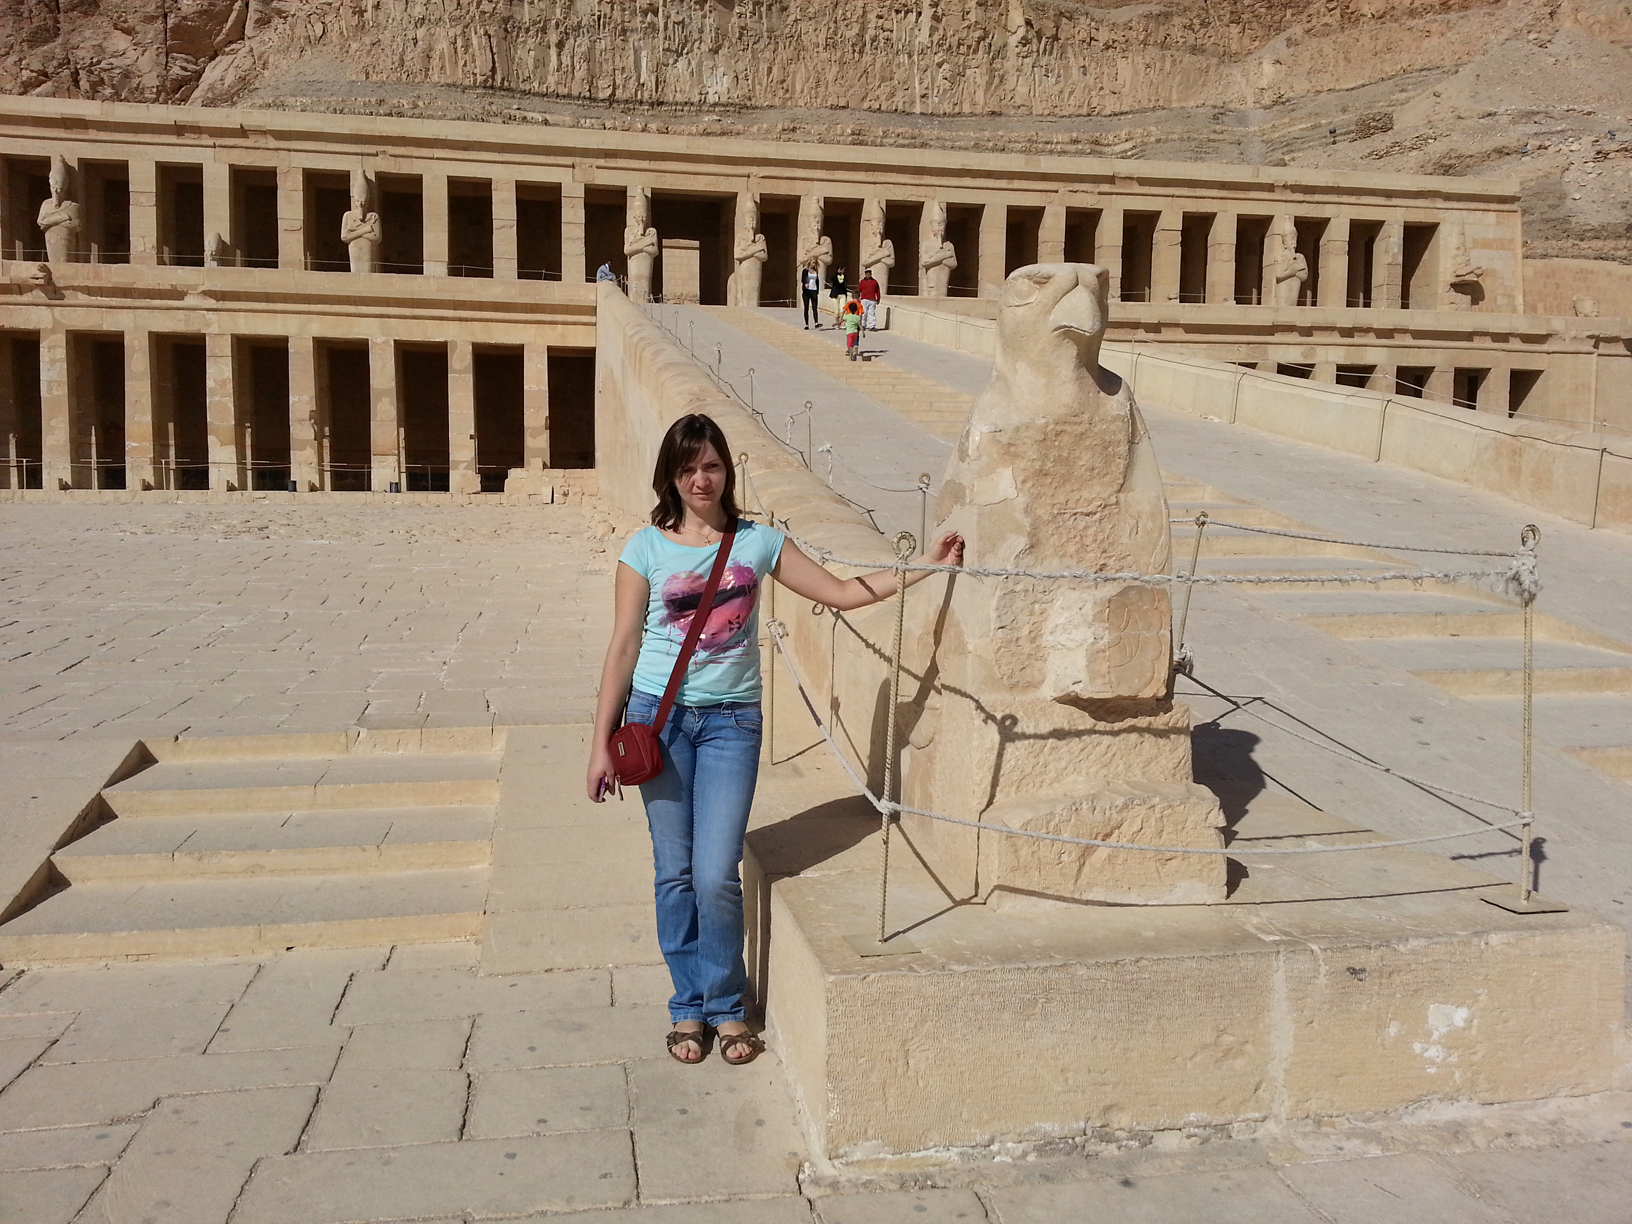 Queen Hatshepsut temple at Deir el-Bahari